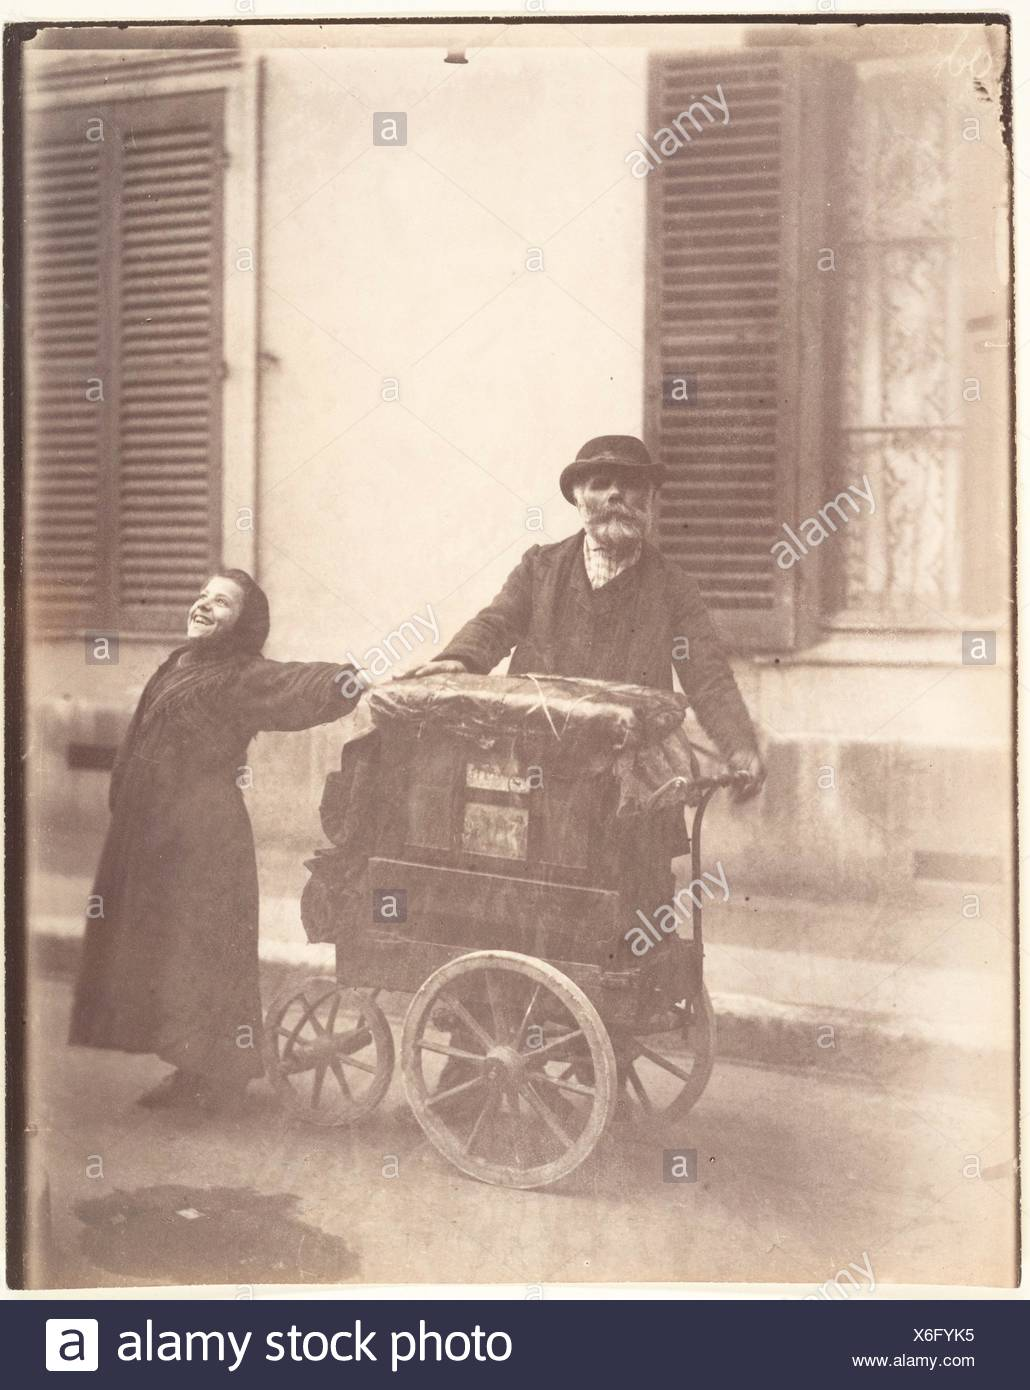 Organ-grinder. Artist: Eugène Atget (French, Libourne 1857-1927 Paris); Date: 1898-99; Medium: Matte albumen silver print from glass negative; - Stock Image